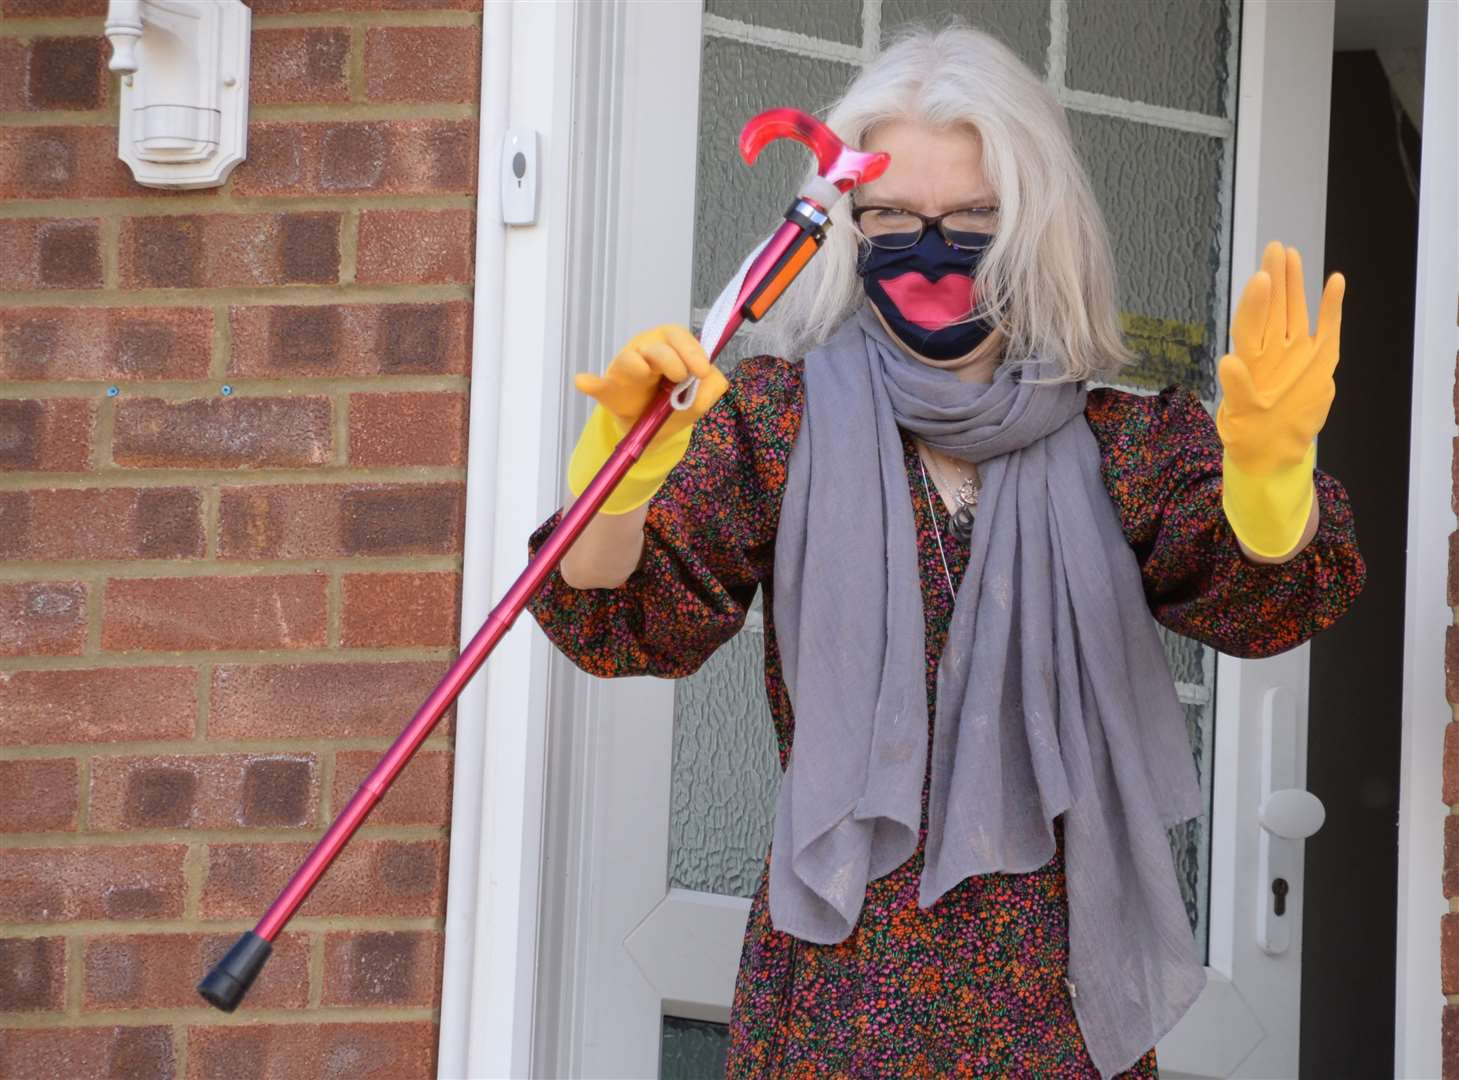 Parkinality columnist Julie Walker, pictured shooing photographer Vikki Lince away from her door, is continuing to shield